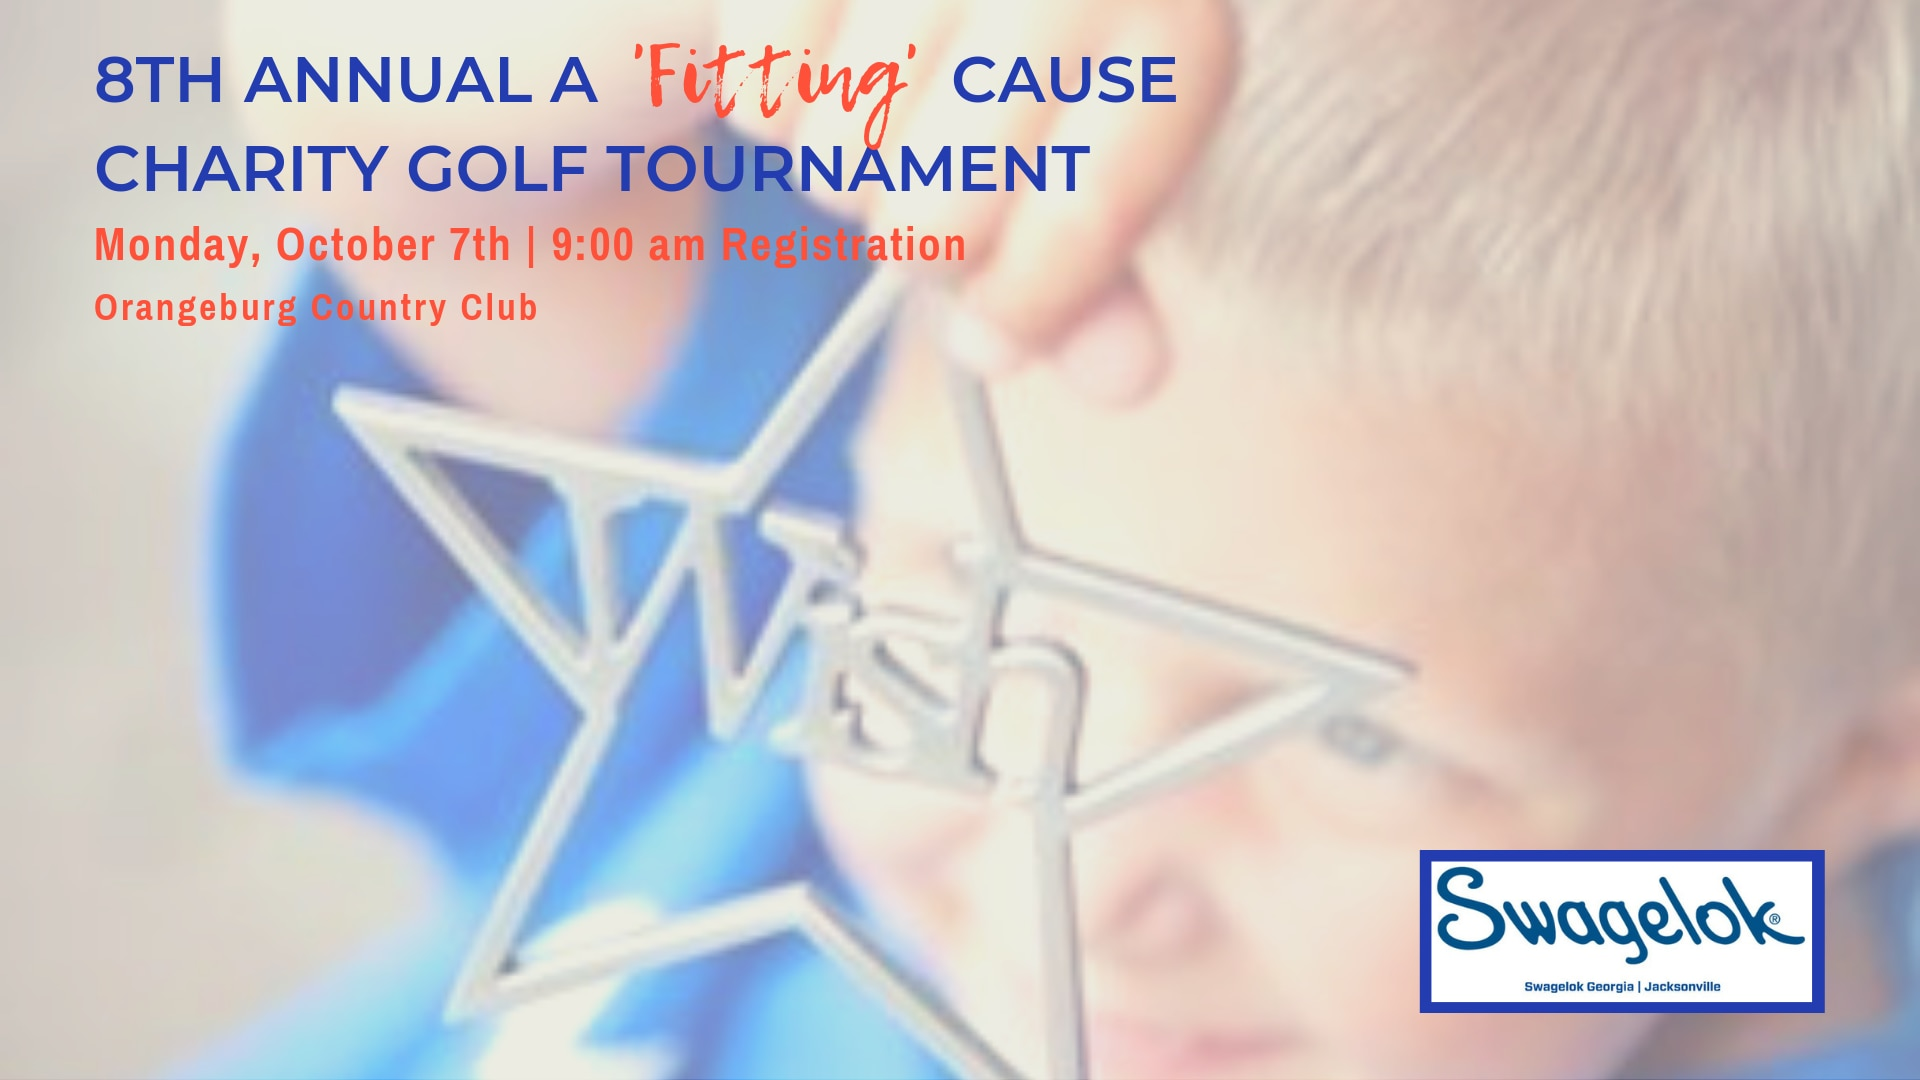 A fitting cause golf tournament make a wish charity